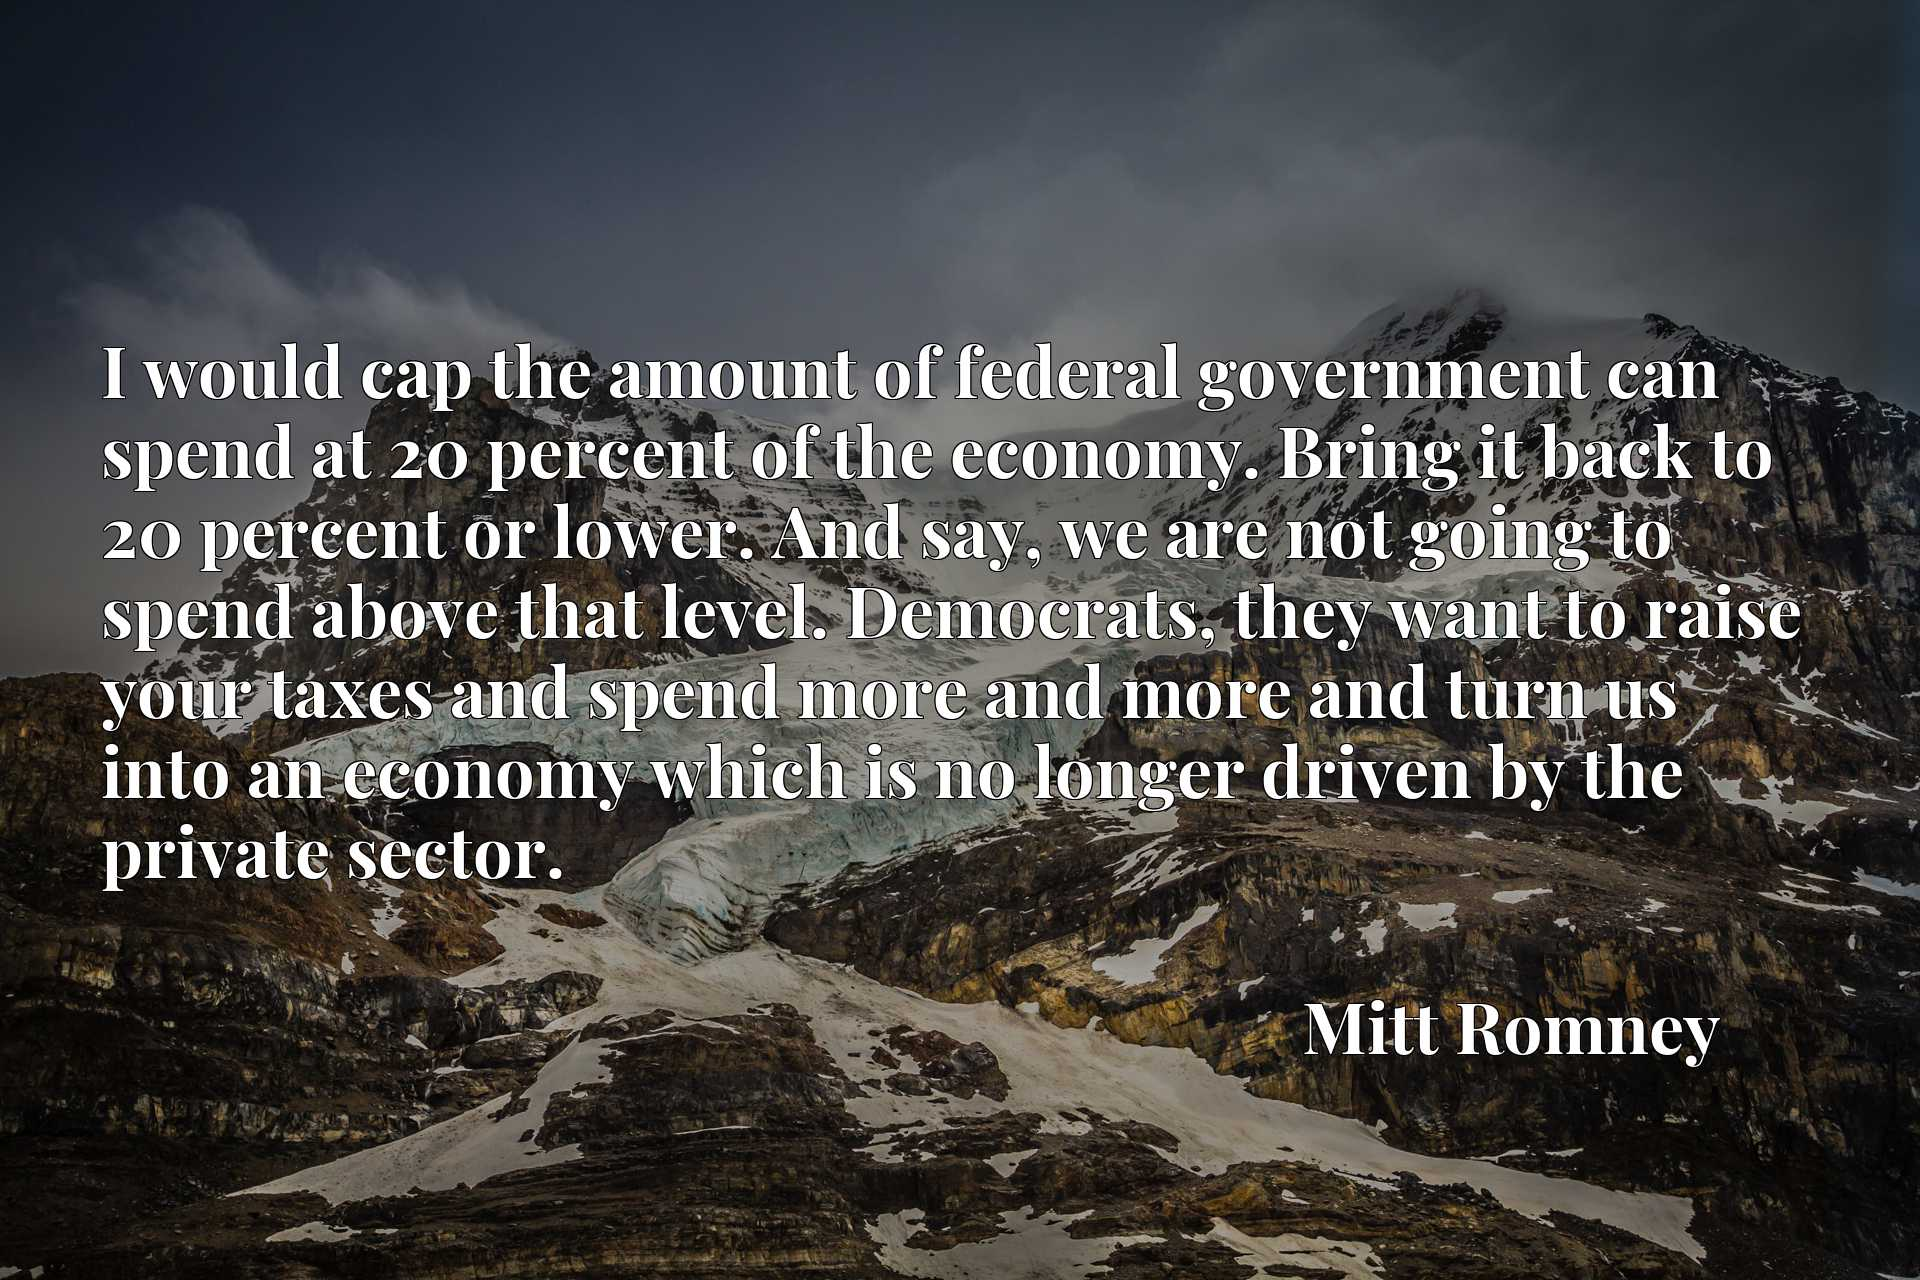 I would cap the amount of federal government can spend at 20 percent of the economy. Bring it back to 20 percent or lower. And say, we are not going to spend above that level. Democrats, they want to raise your taxes and spend more and more and turn us into an economy which is no longer driven by the private sector.